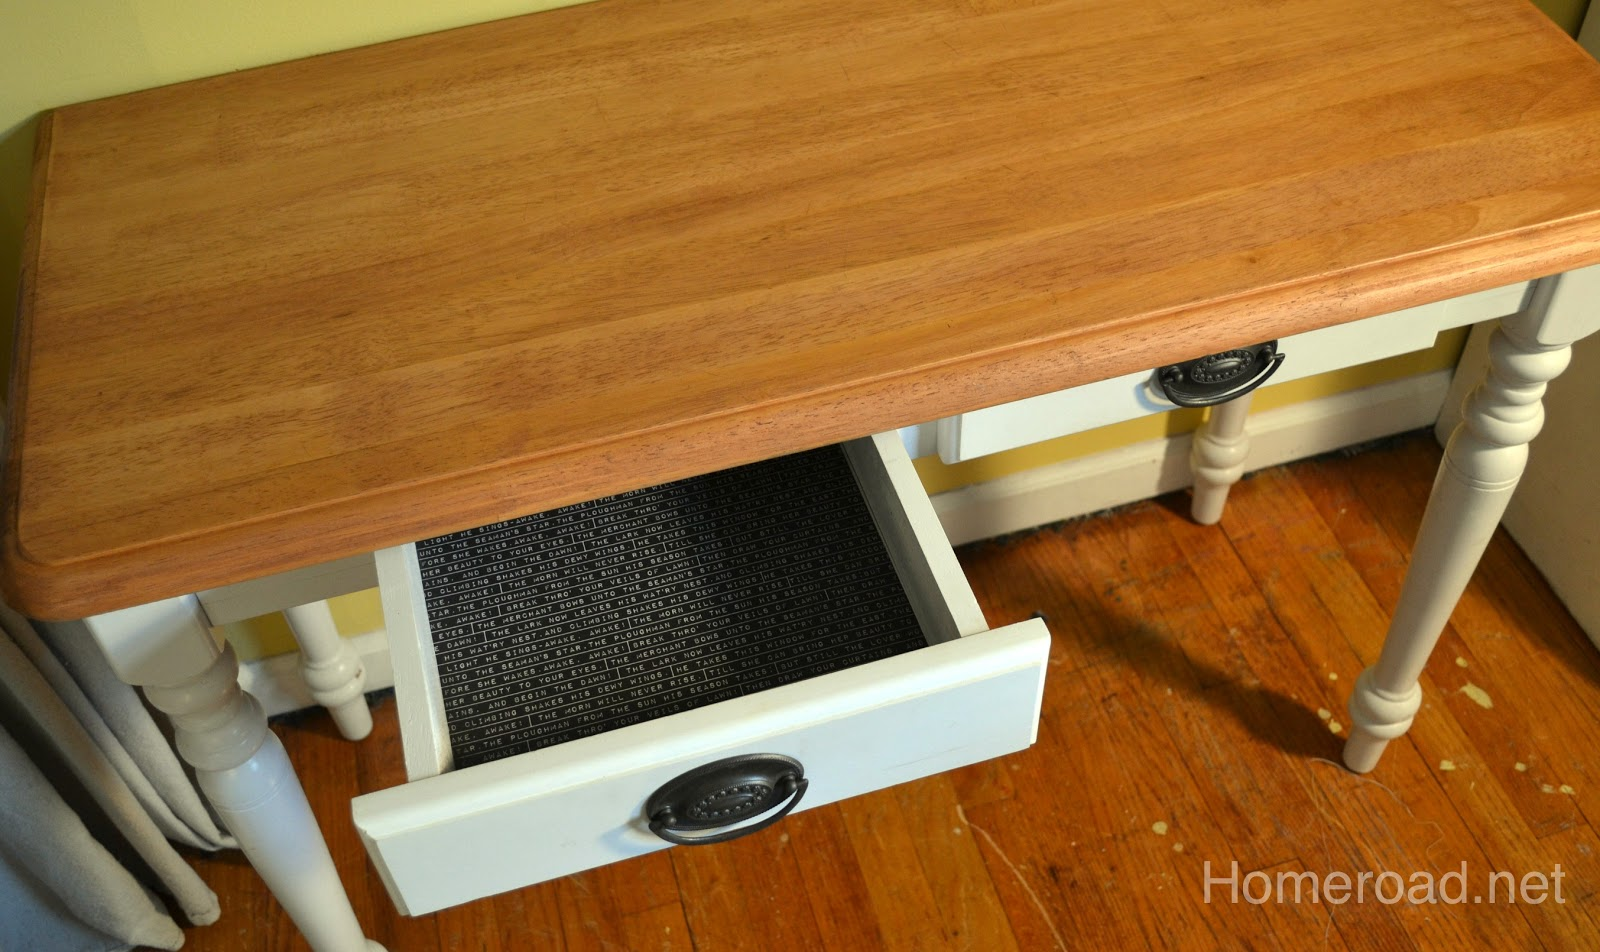 Diy re do sewing table homeroad for Diy cast net